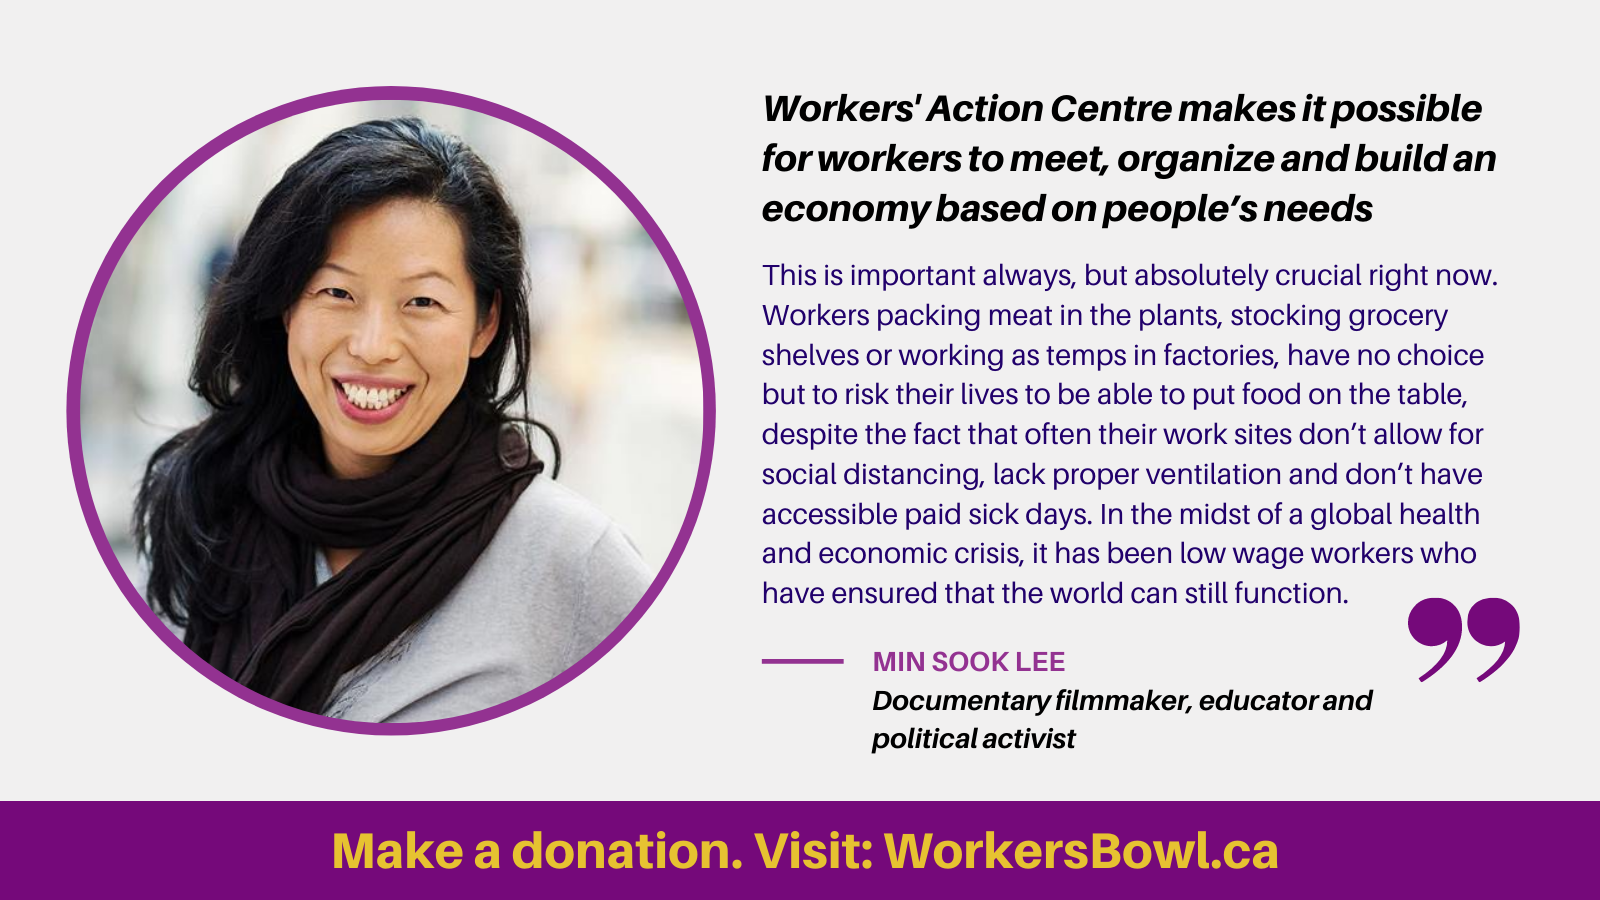 link to donate at the WorkersBowl.ca